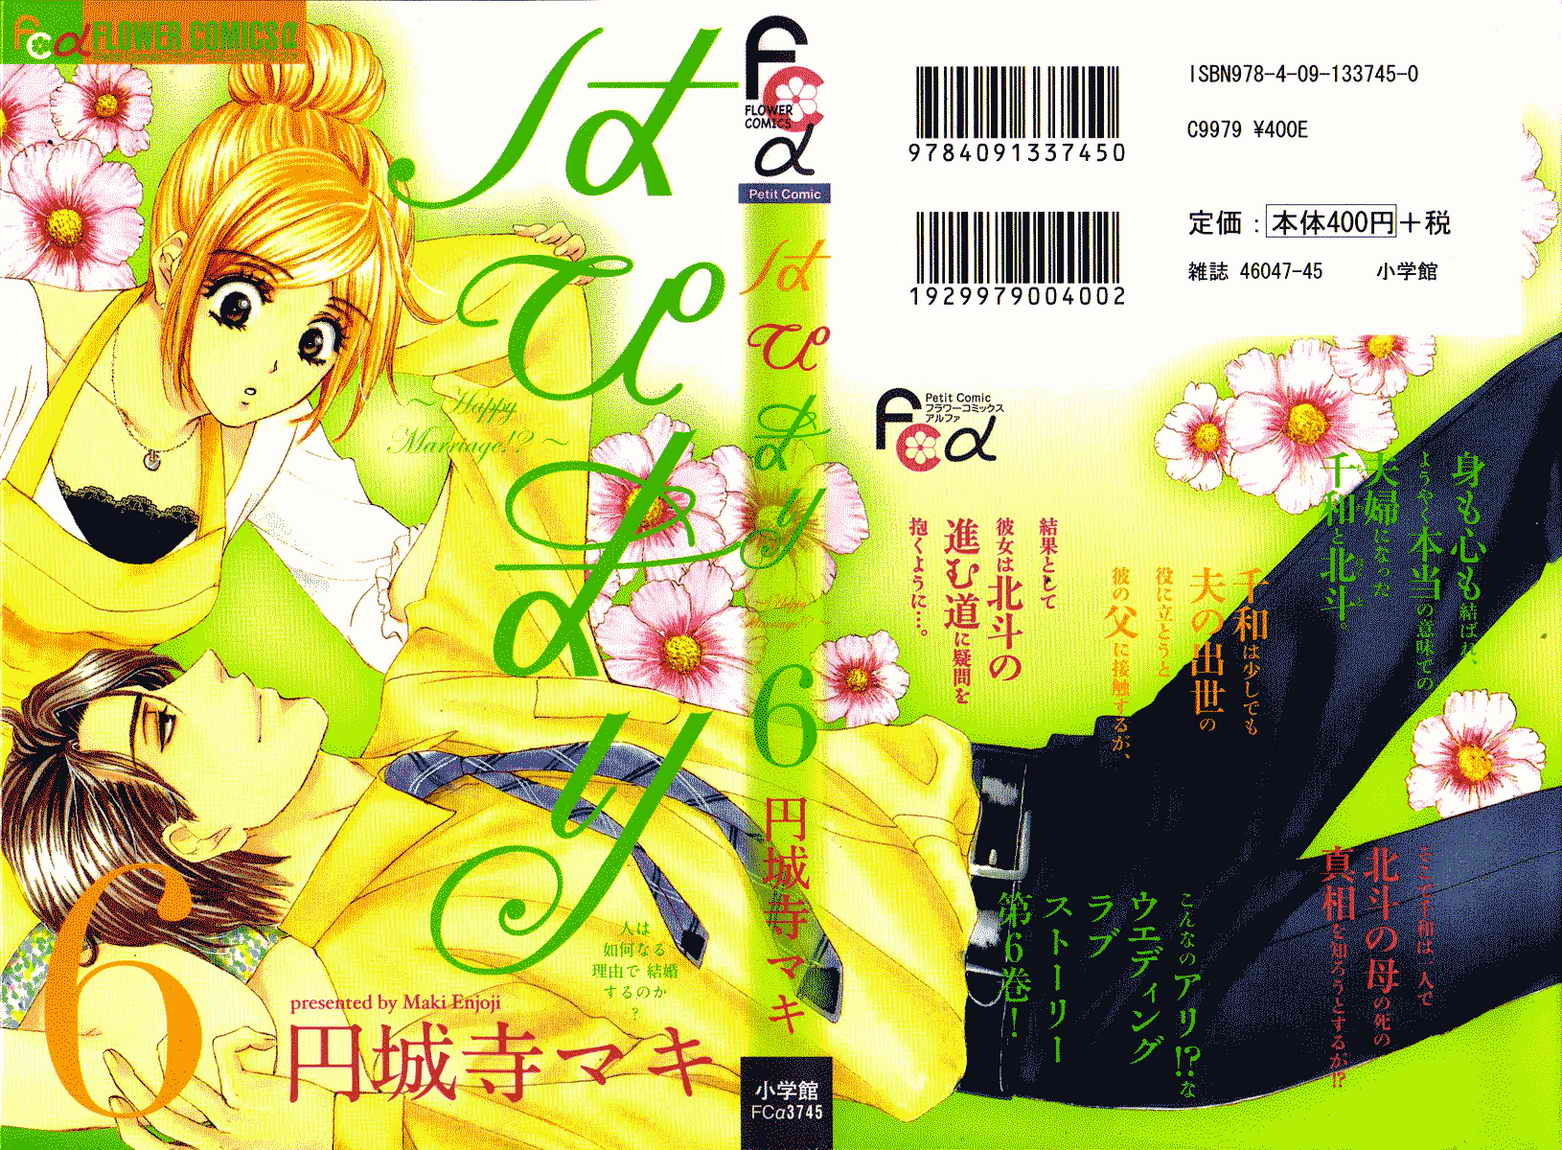 HAPI MARI HAPPY MARRIAGE MAKI ENJOJI MANGA BOOK VOL.3 | eBay